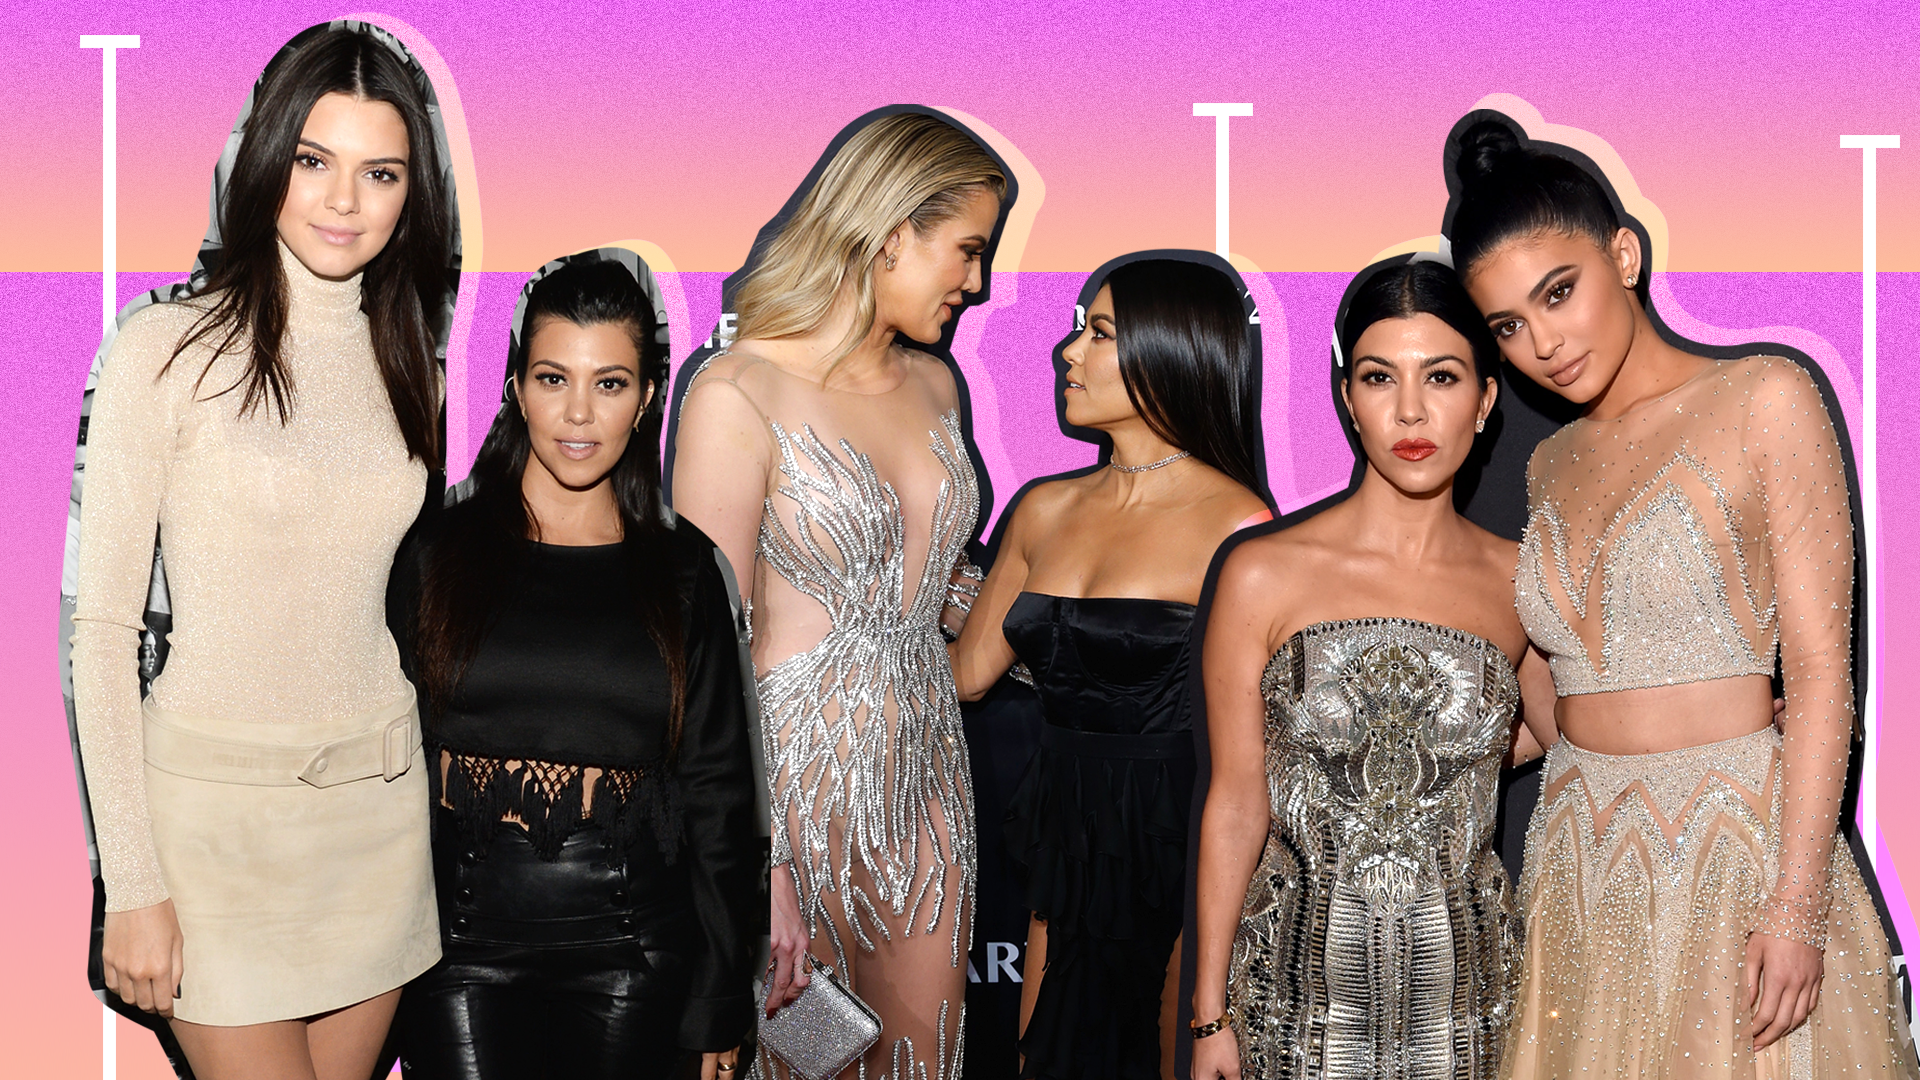 Kylie Jenner A Little Obsessed Kendall Jenner